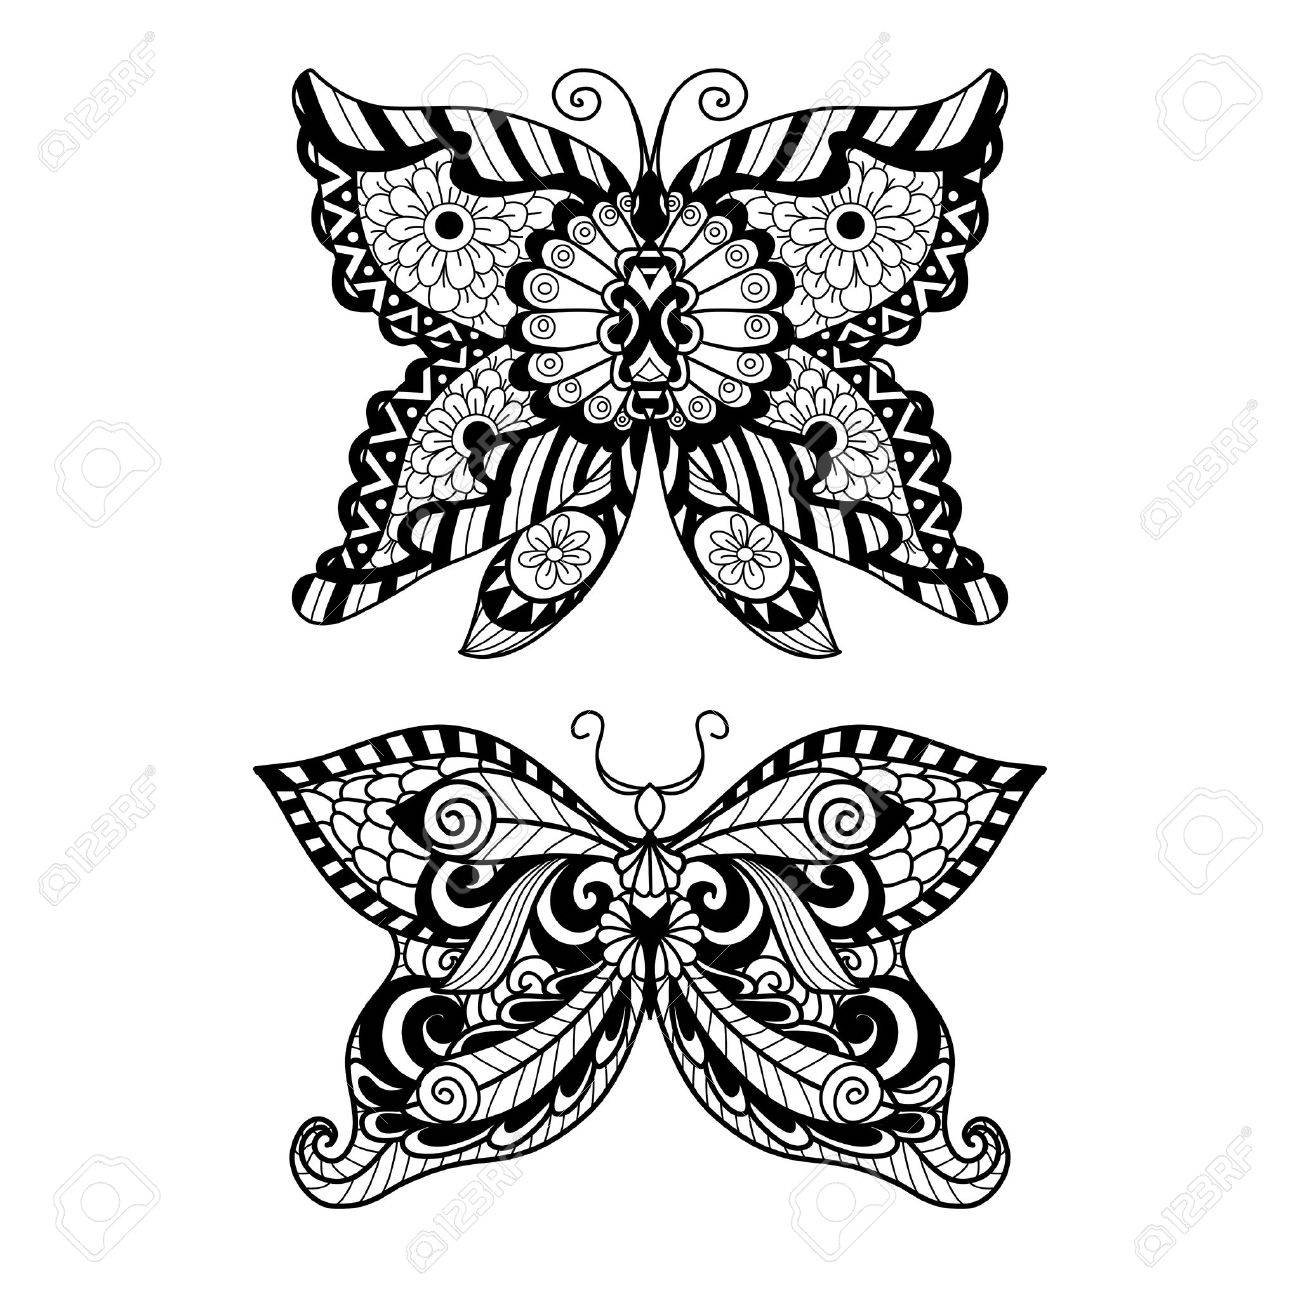 Shirt design book - Hand Drawn Butterfly Style For Coloring Book Shirt Design Or Tattoo Stock Vector 46617470